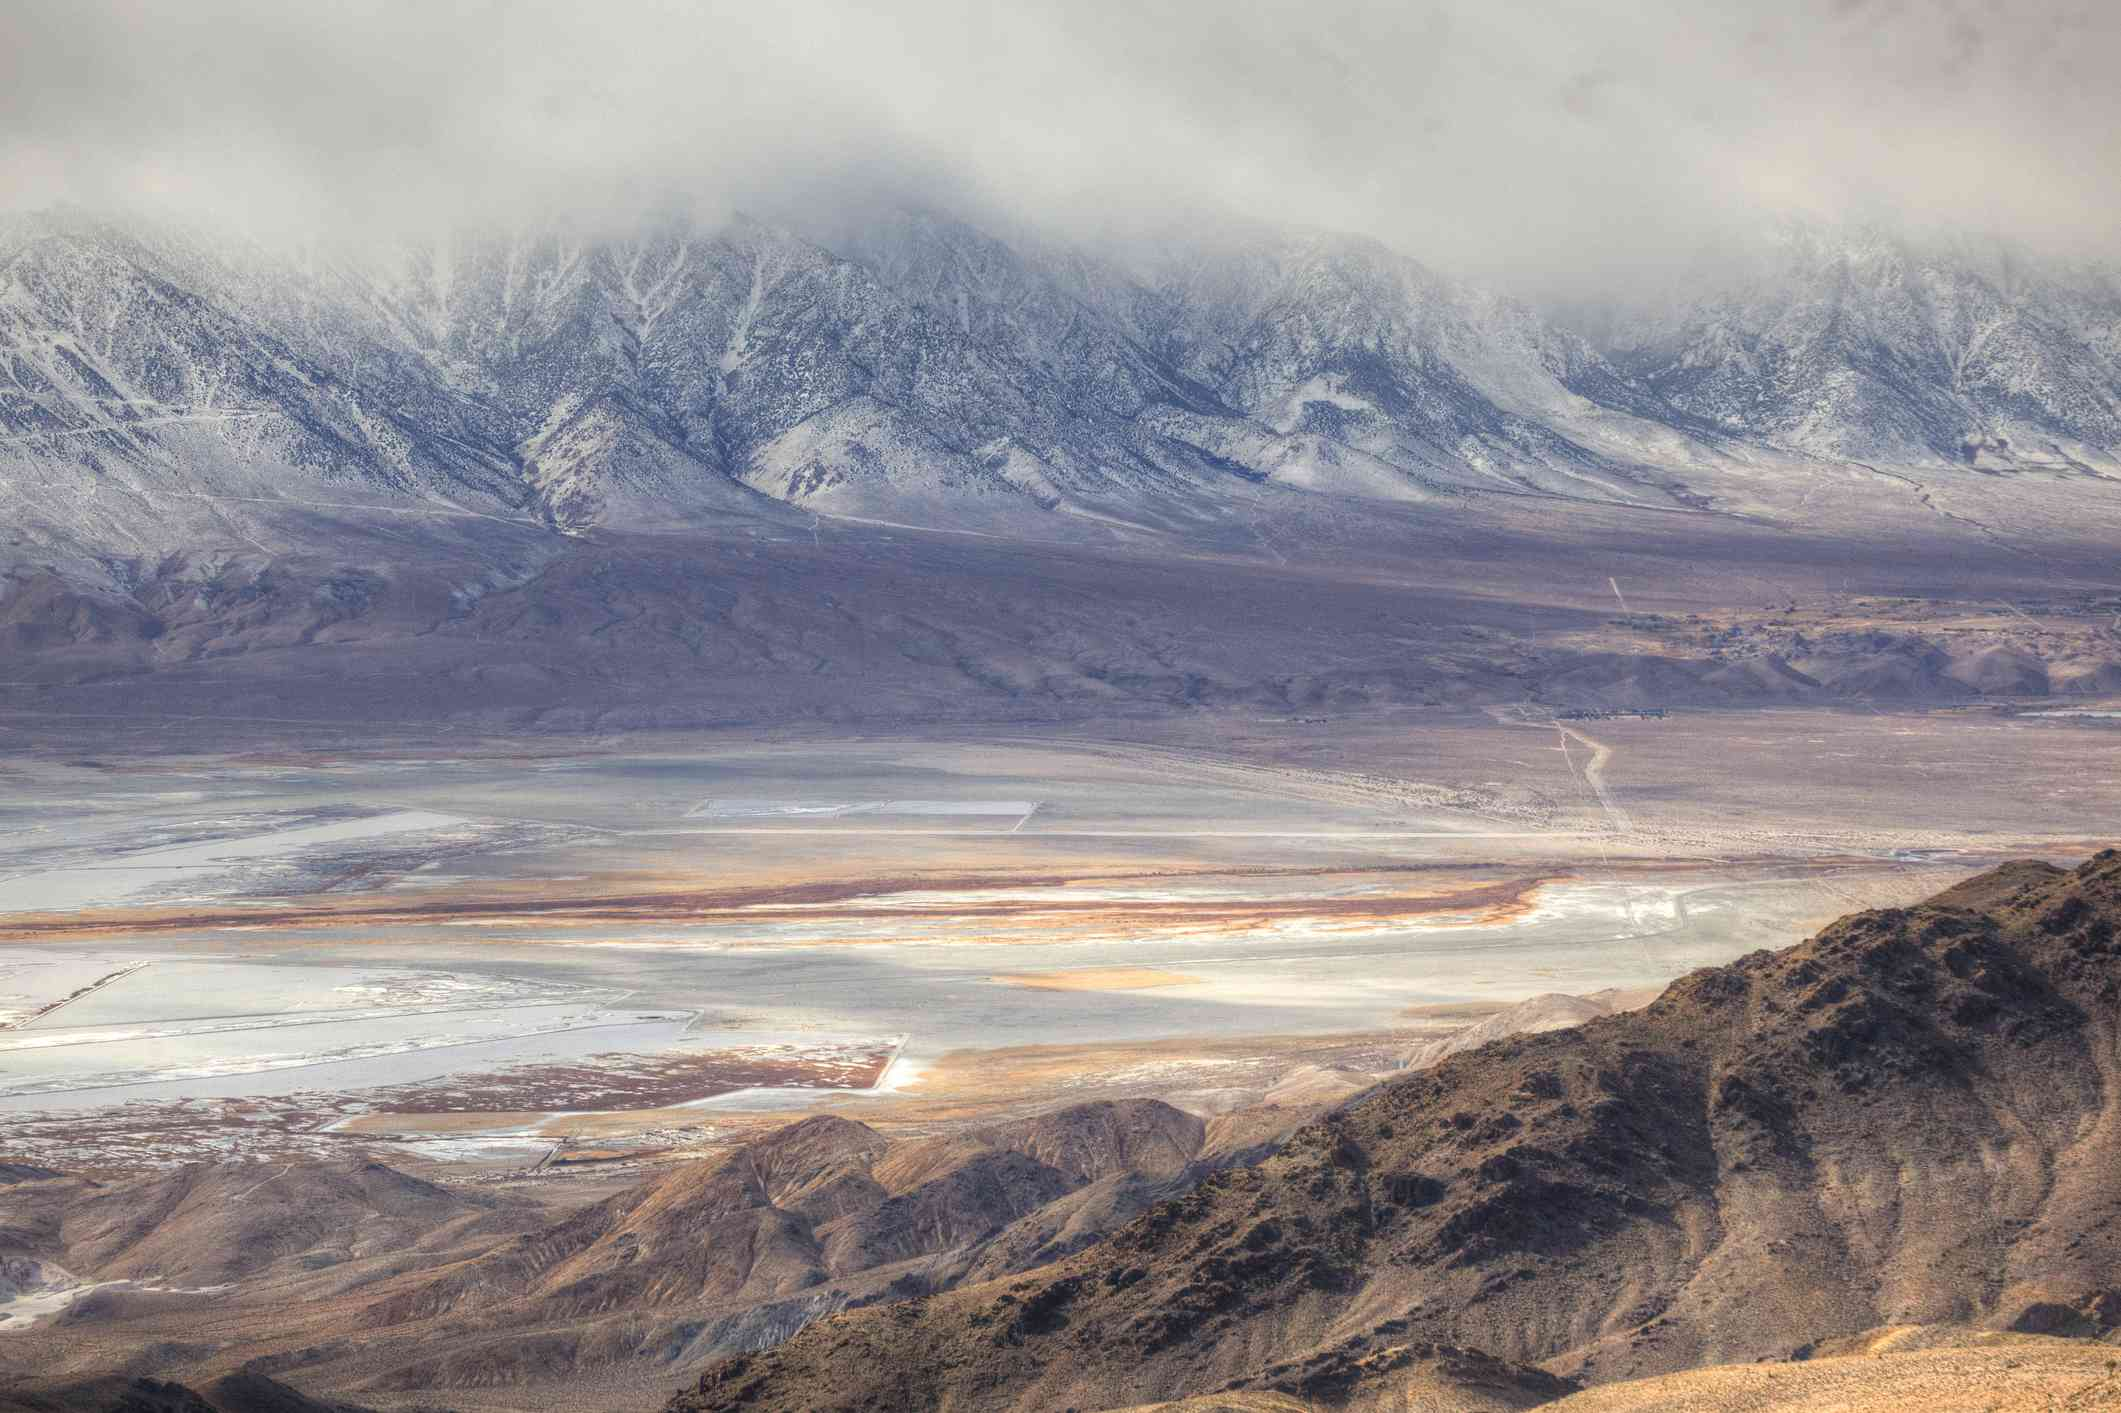 Elevated view of a dry Owens Lake with snowy mountains